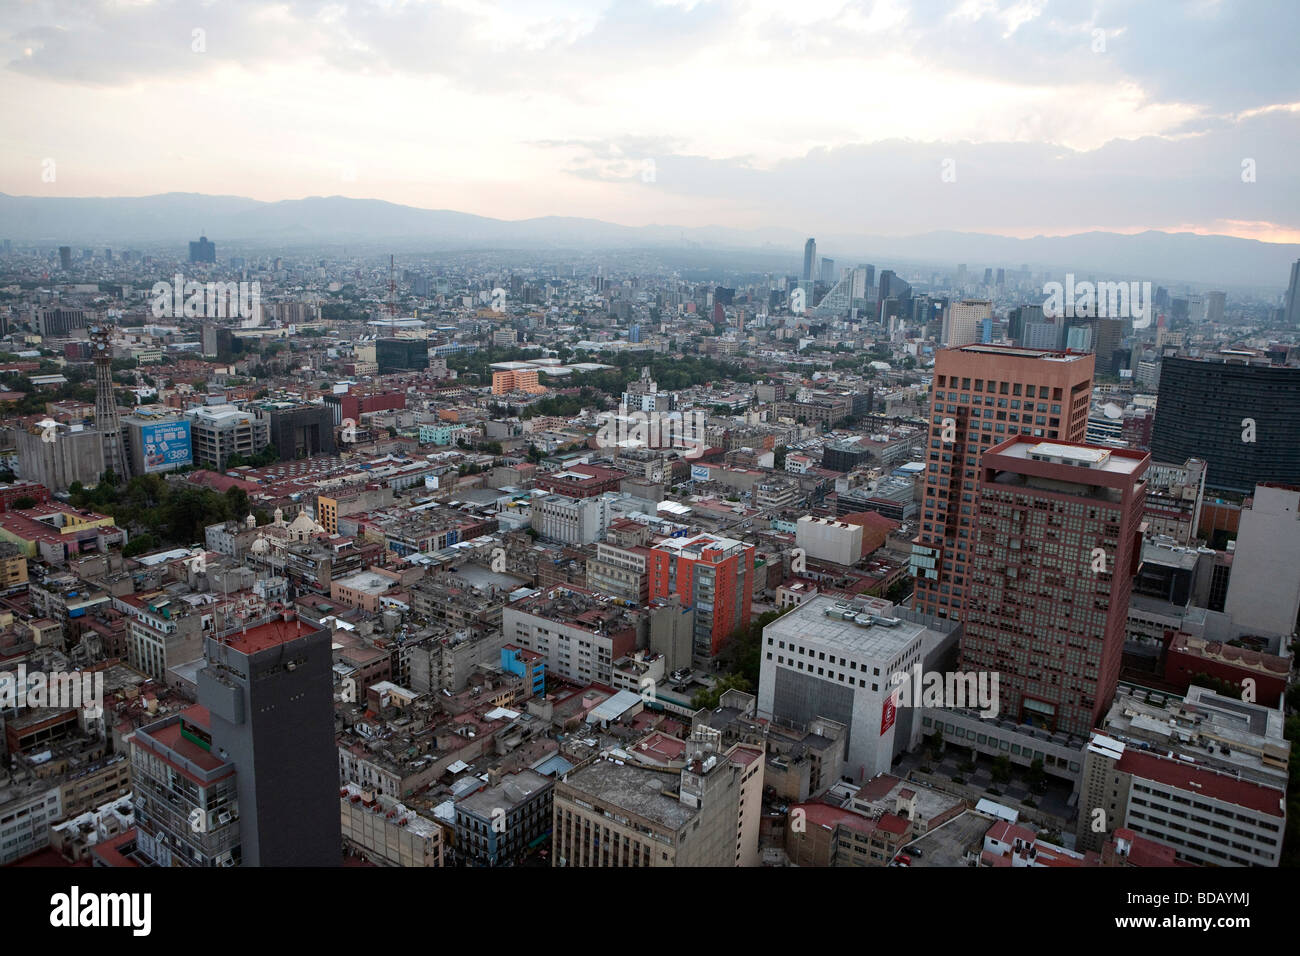 View of Mexico City, Mexico - Stock Image